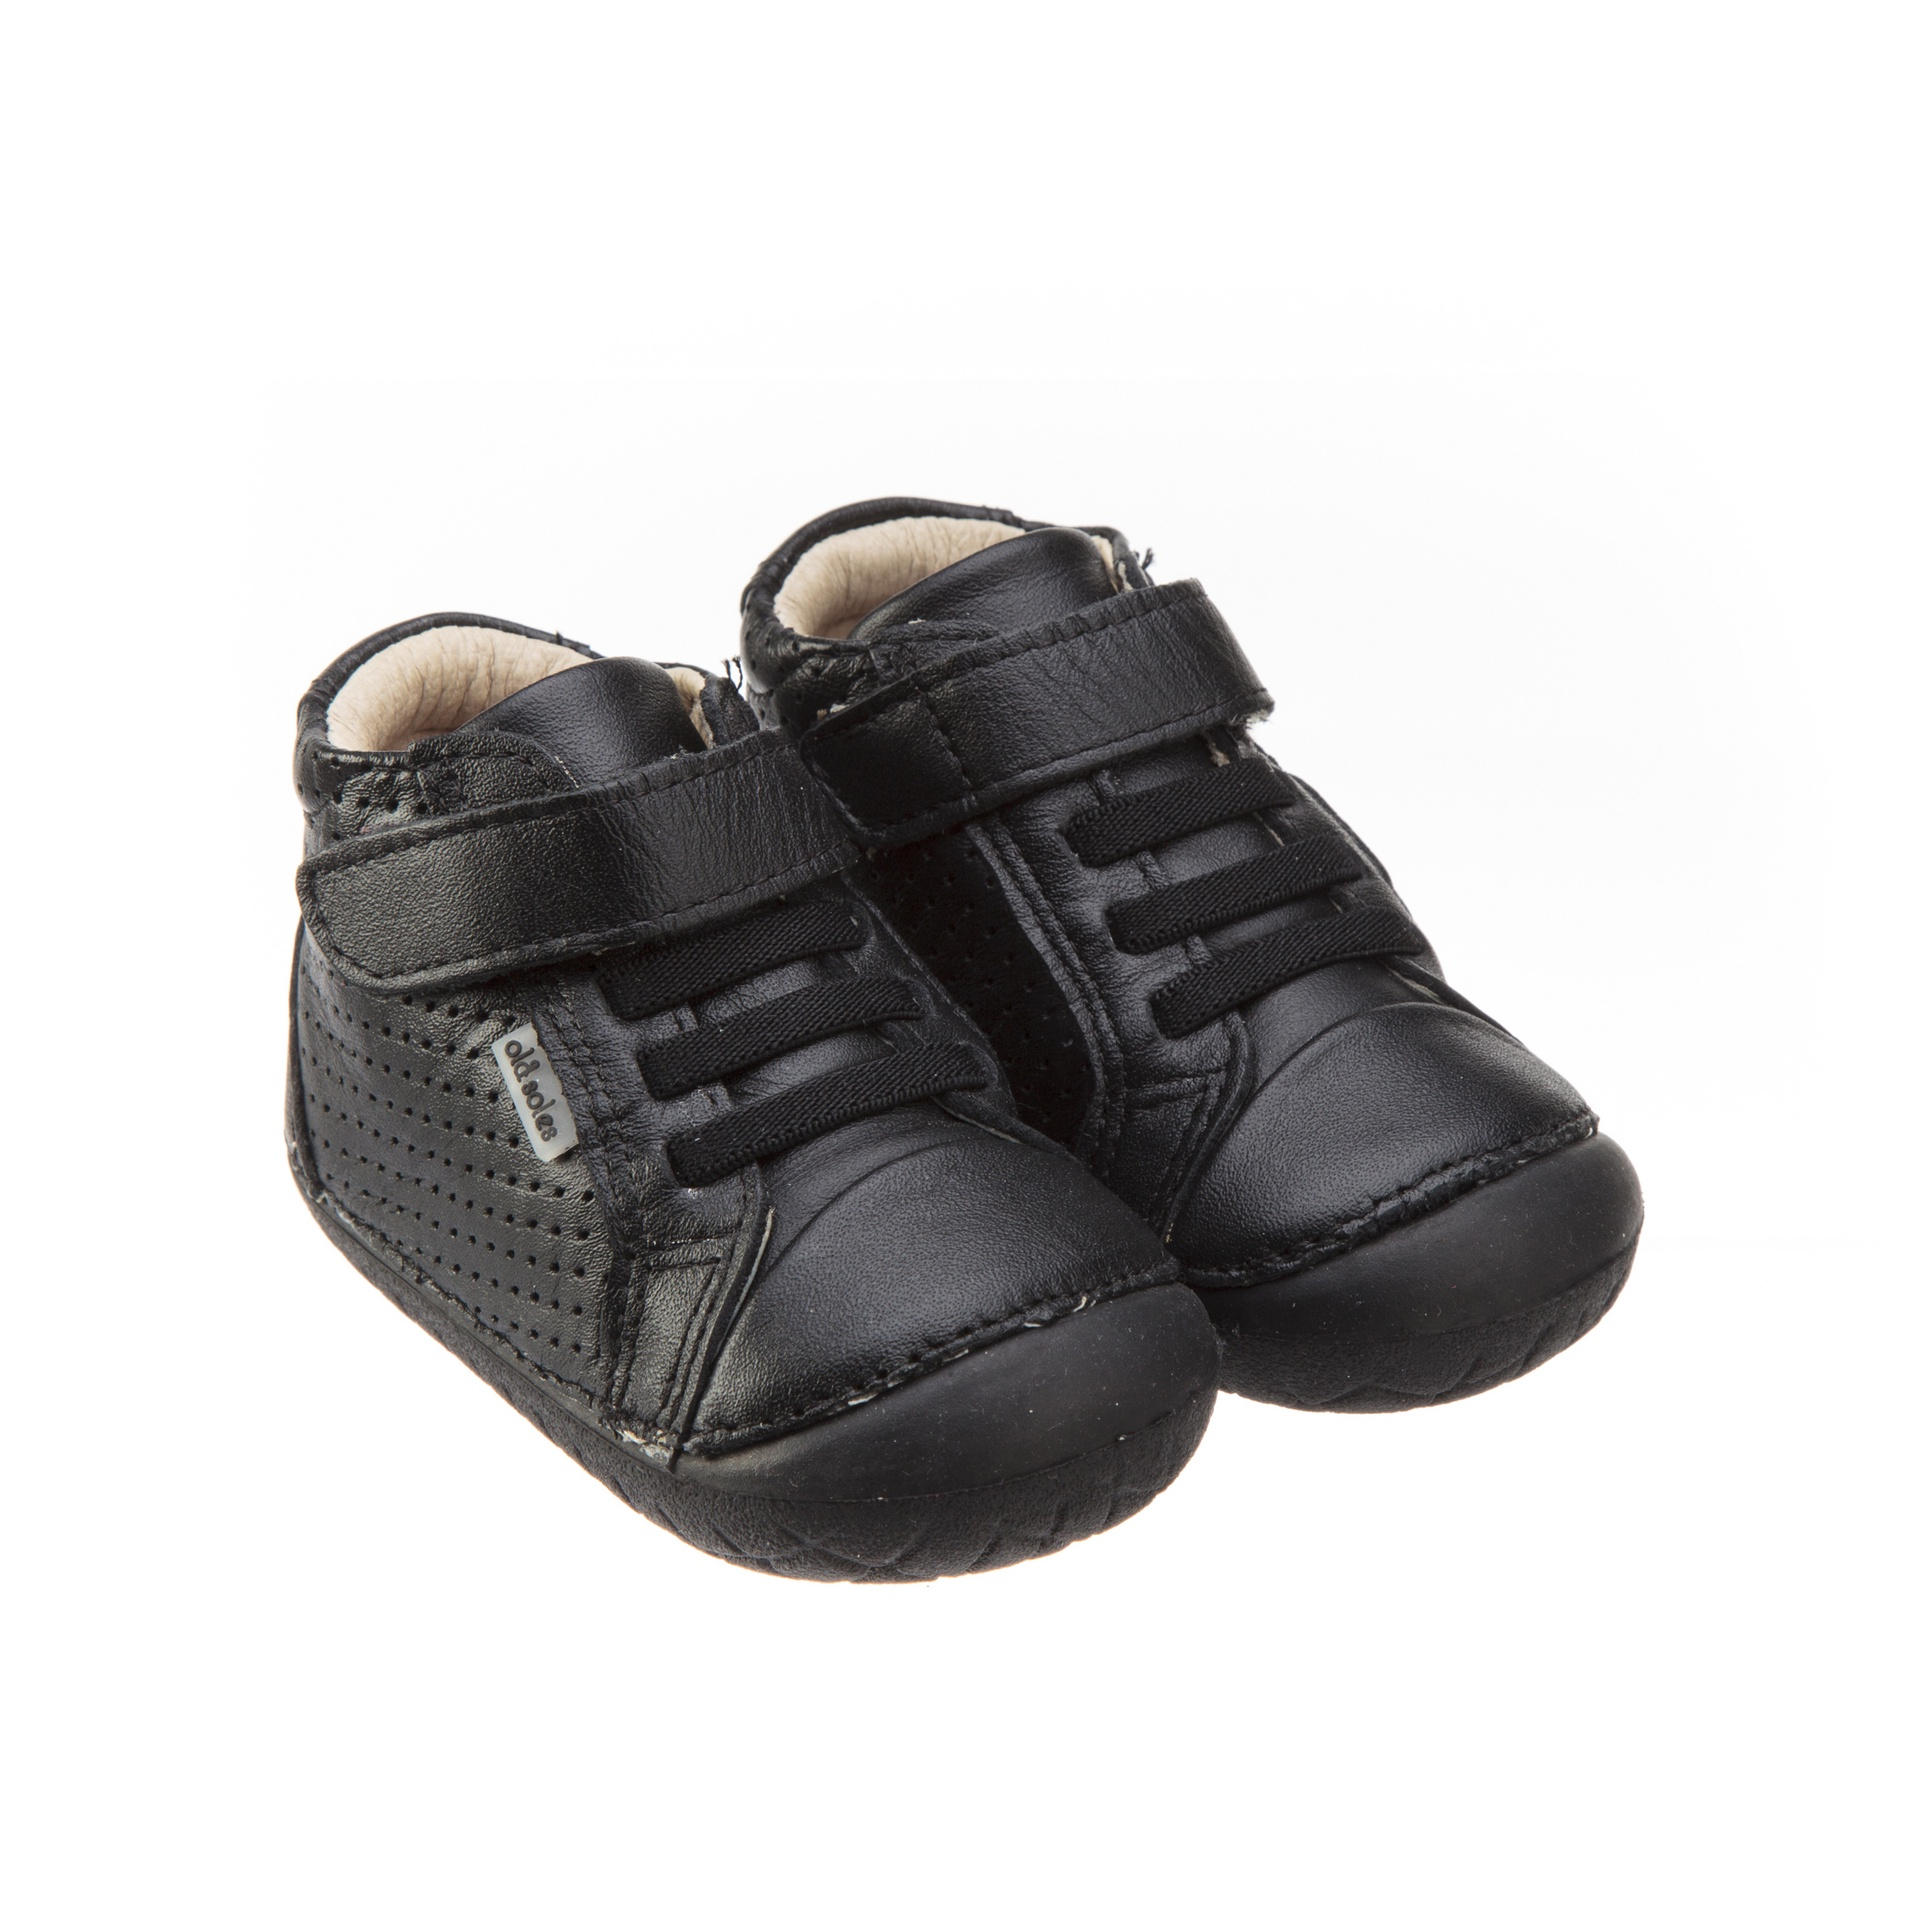 Old Soles Pave Cheer Black